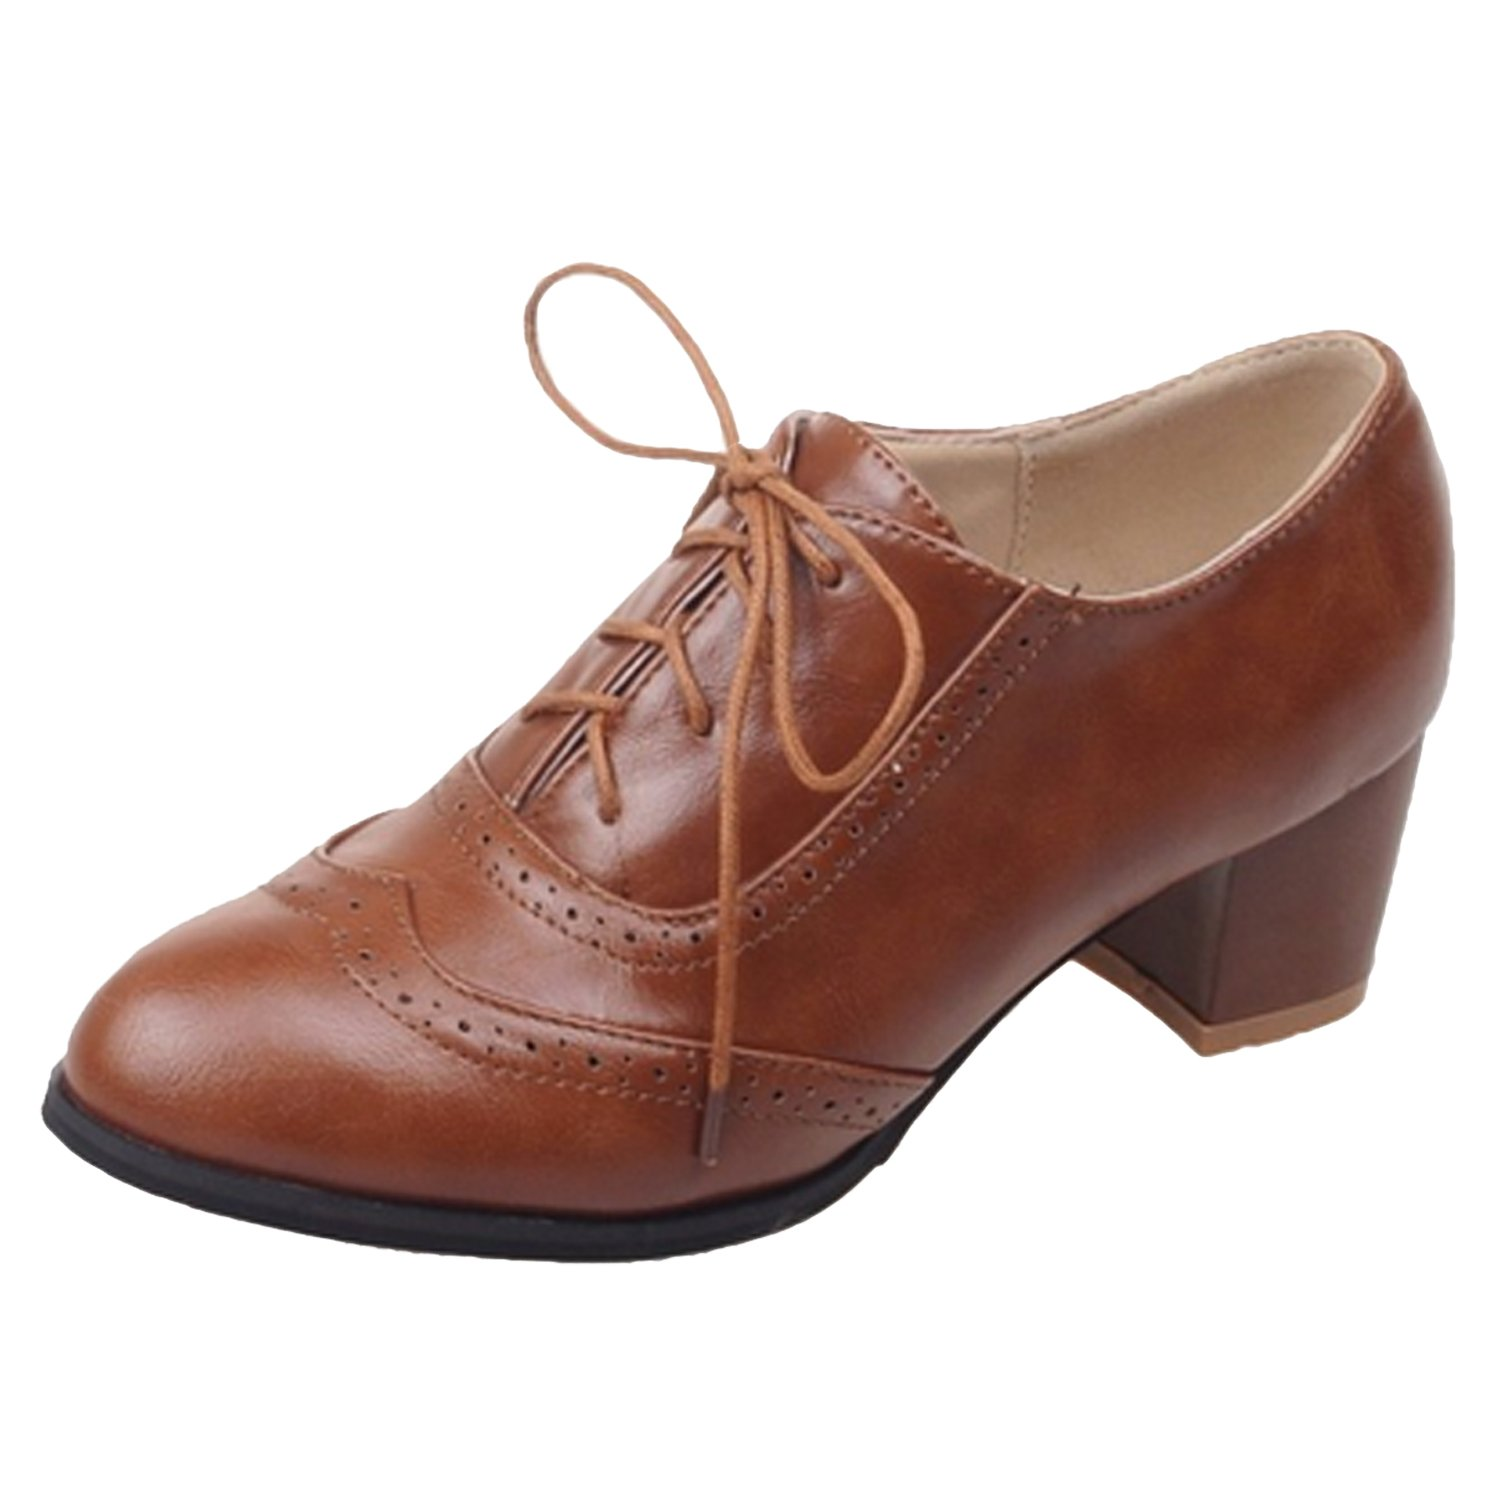 1940s Womens Footwear Womens Heel Oxfords £22.99 AT vintagedancer.com